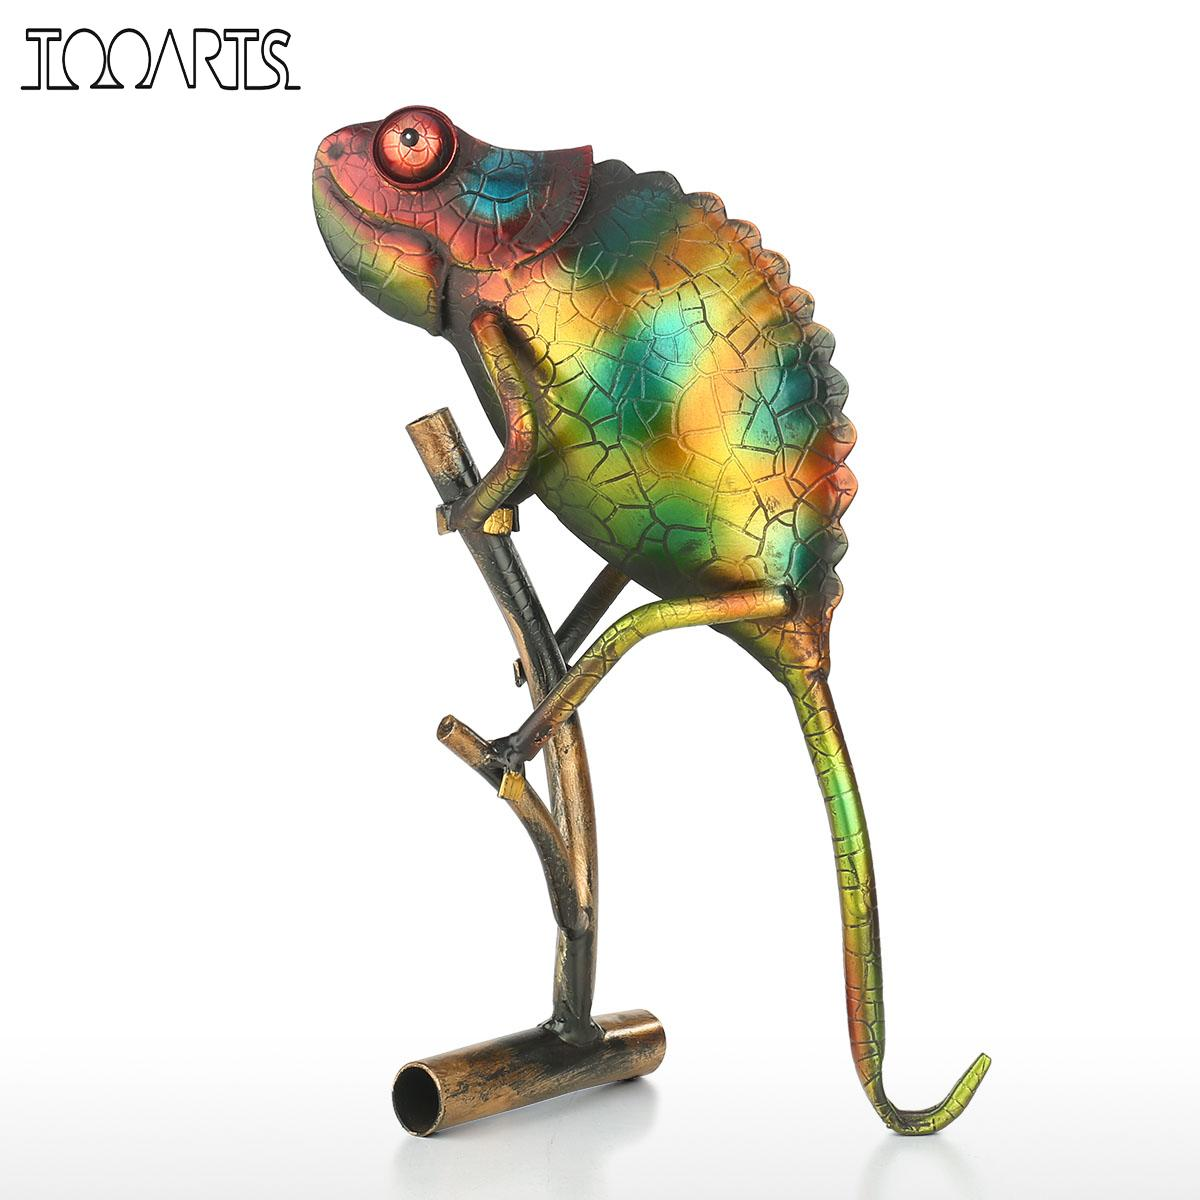 Lizard Animal Figurine Ornaments Home Furnishing Art Metal Sculpture Home Decoration Accessories Gift For Boyfriend Statue Chien